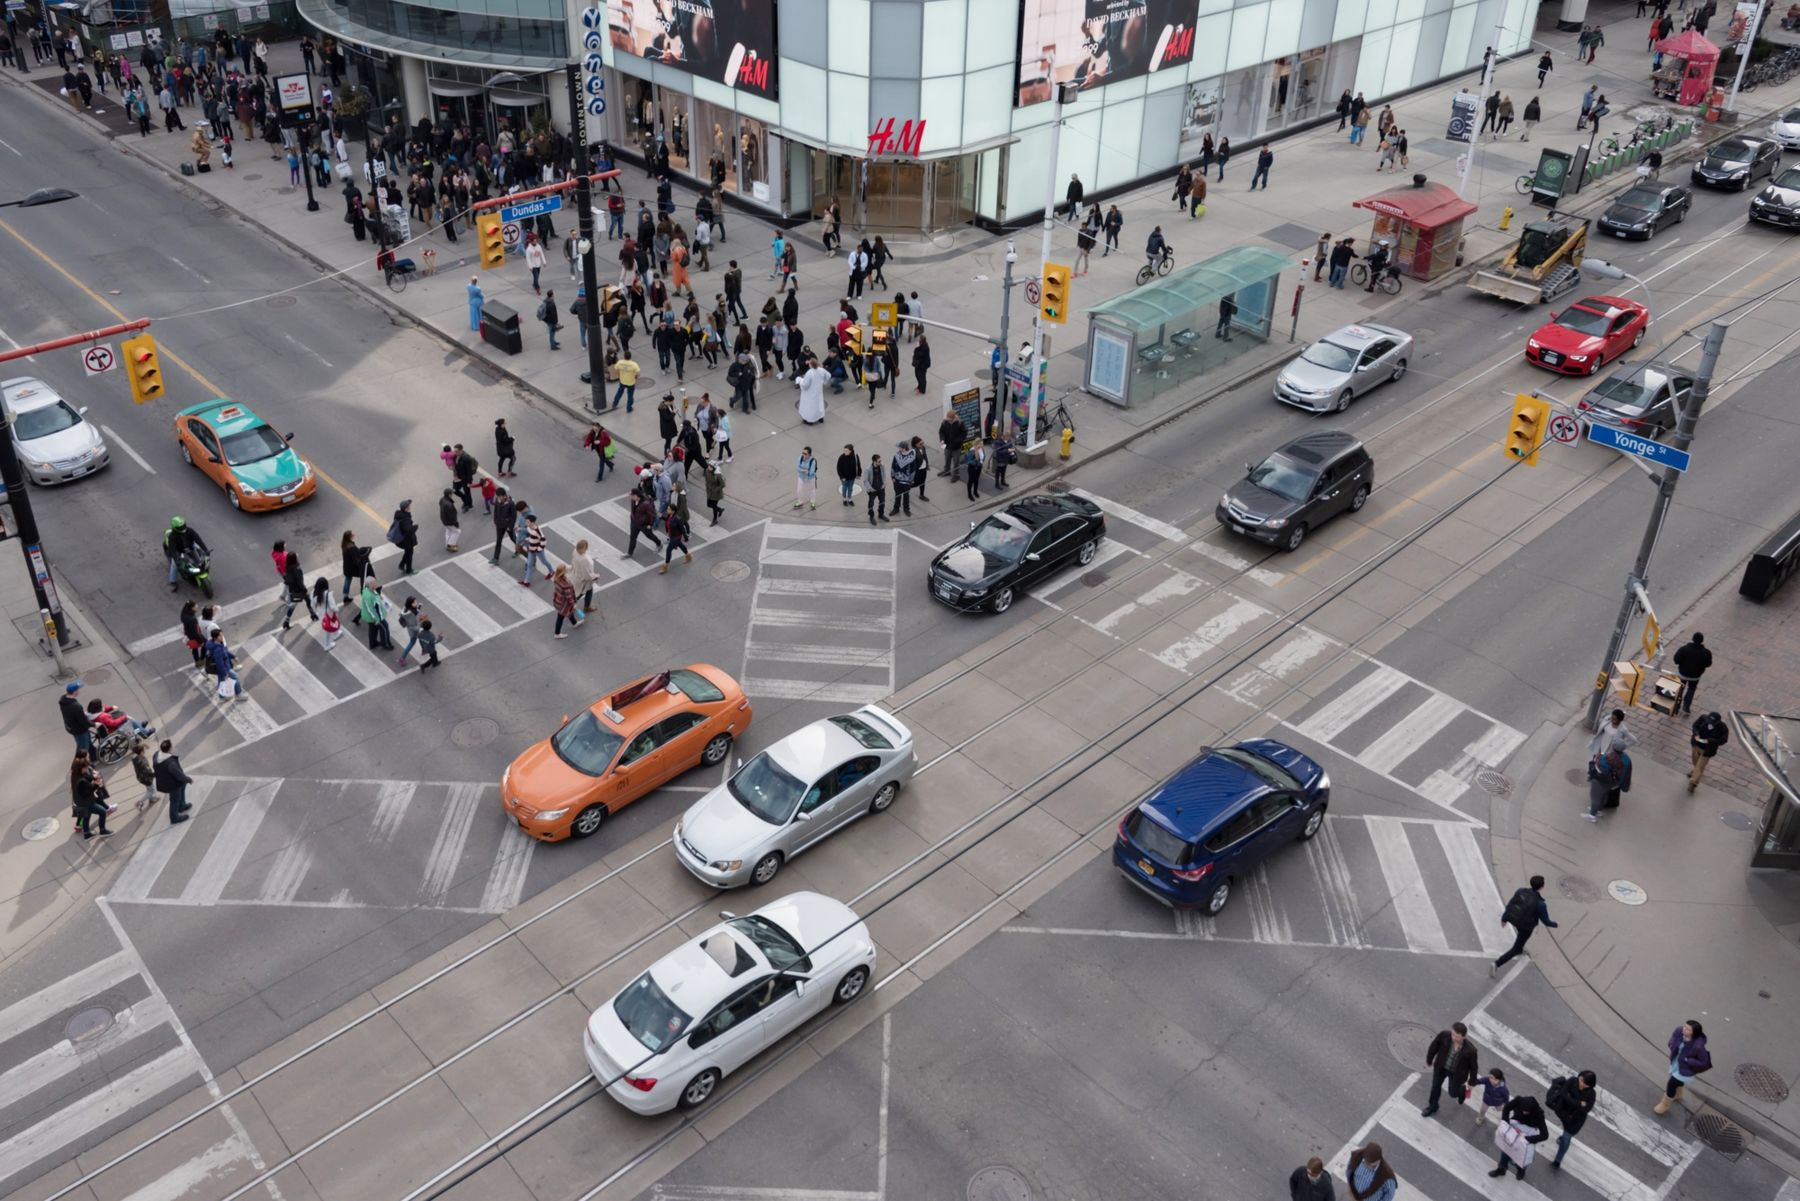 Aerial view of Dundas Square in the busiest intersection of the city: Yonge St. and Dundas St. The city council is now voting on a plan to rename streets named after Henry Dundas, a keyobstructionist in Toronto's early quest to abolish slavery.